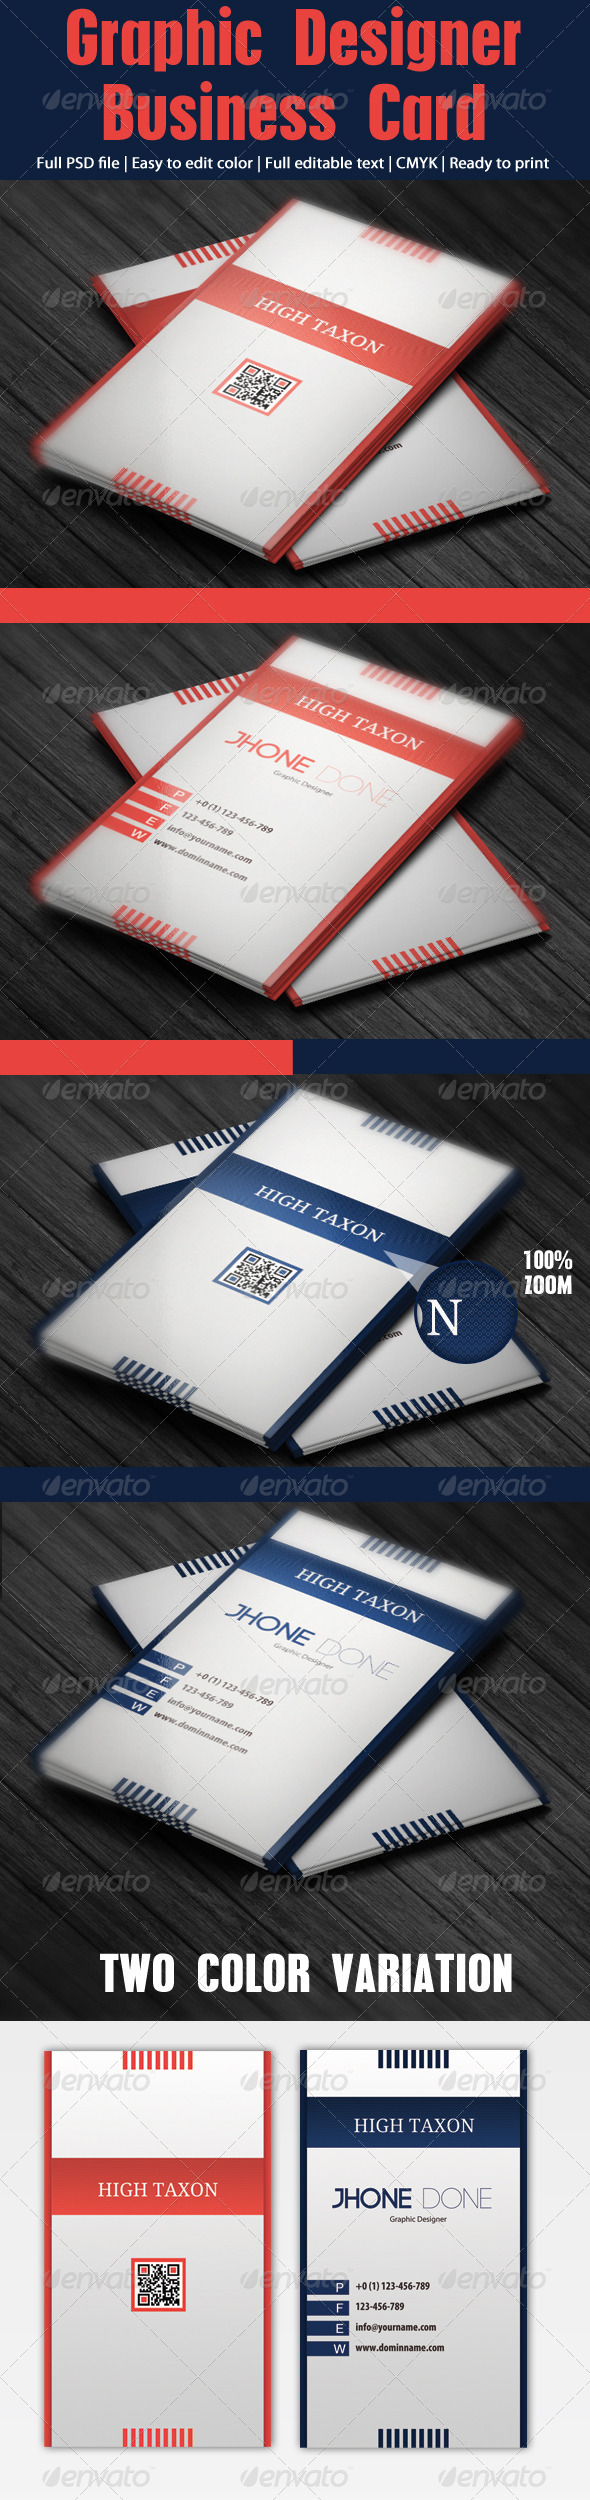 GraphicRiver Graphic Designer Business Cards 4689715